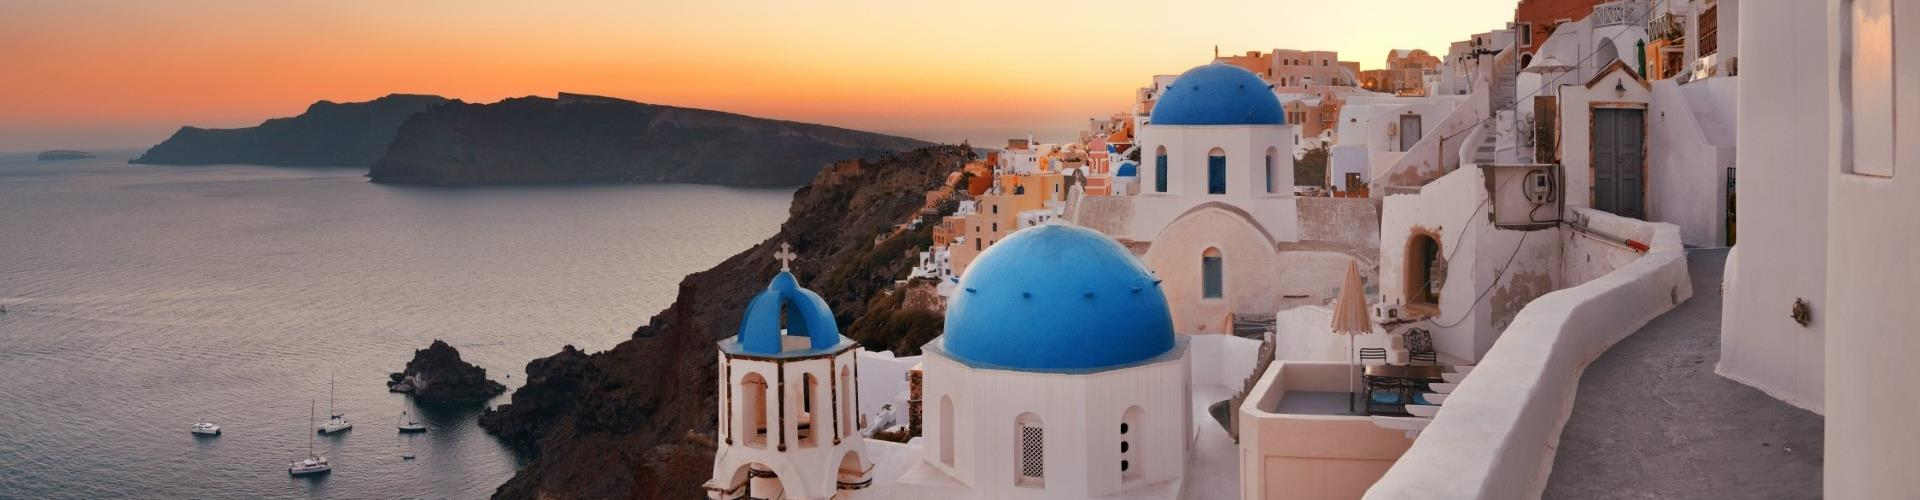 Photo of Bus tour to Blue Dome, Imerovigli & Sunset in Oia